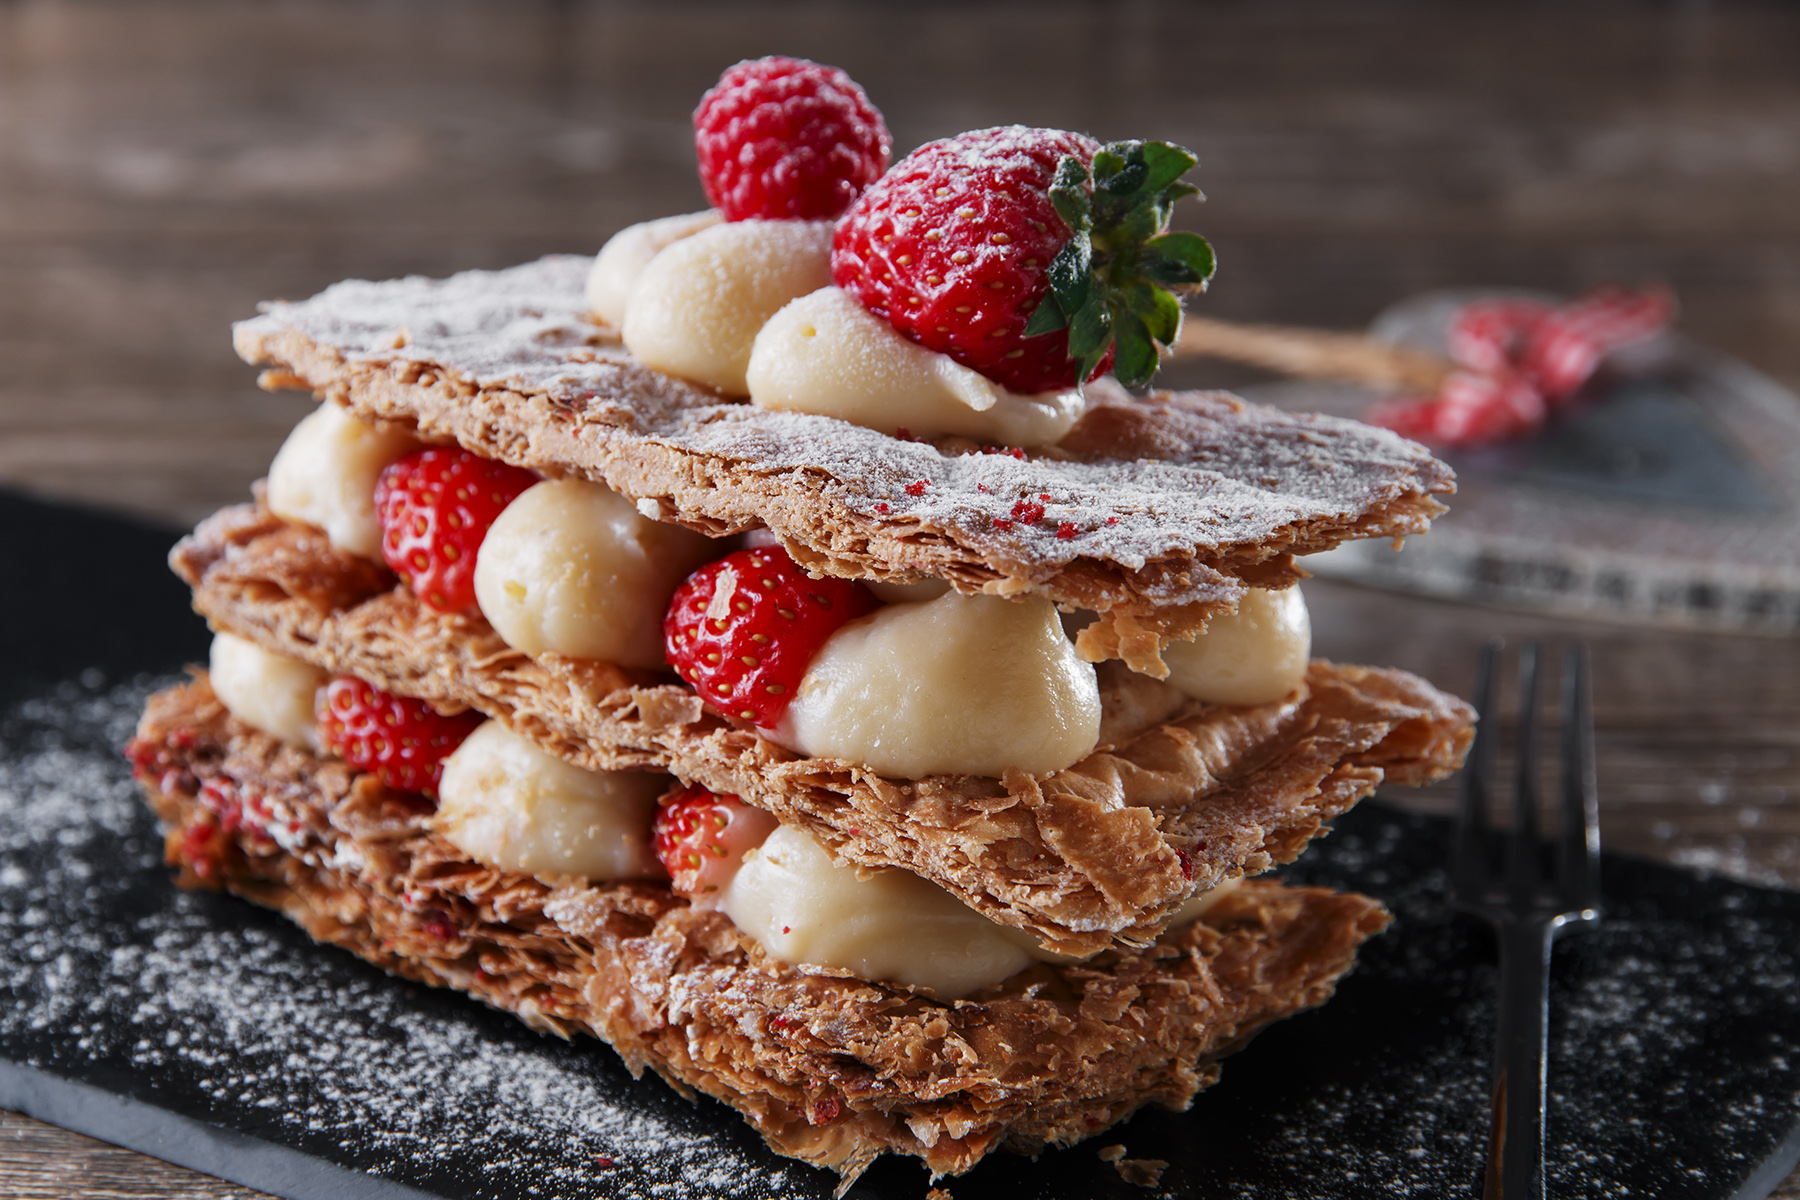 French cuisine: mille feuille